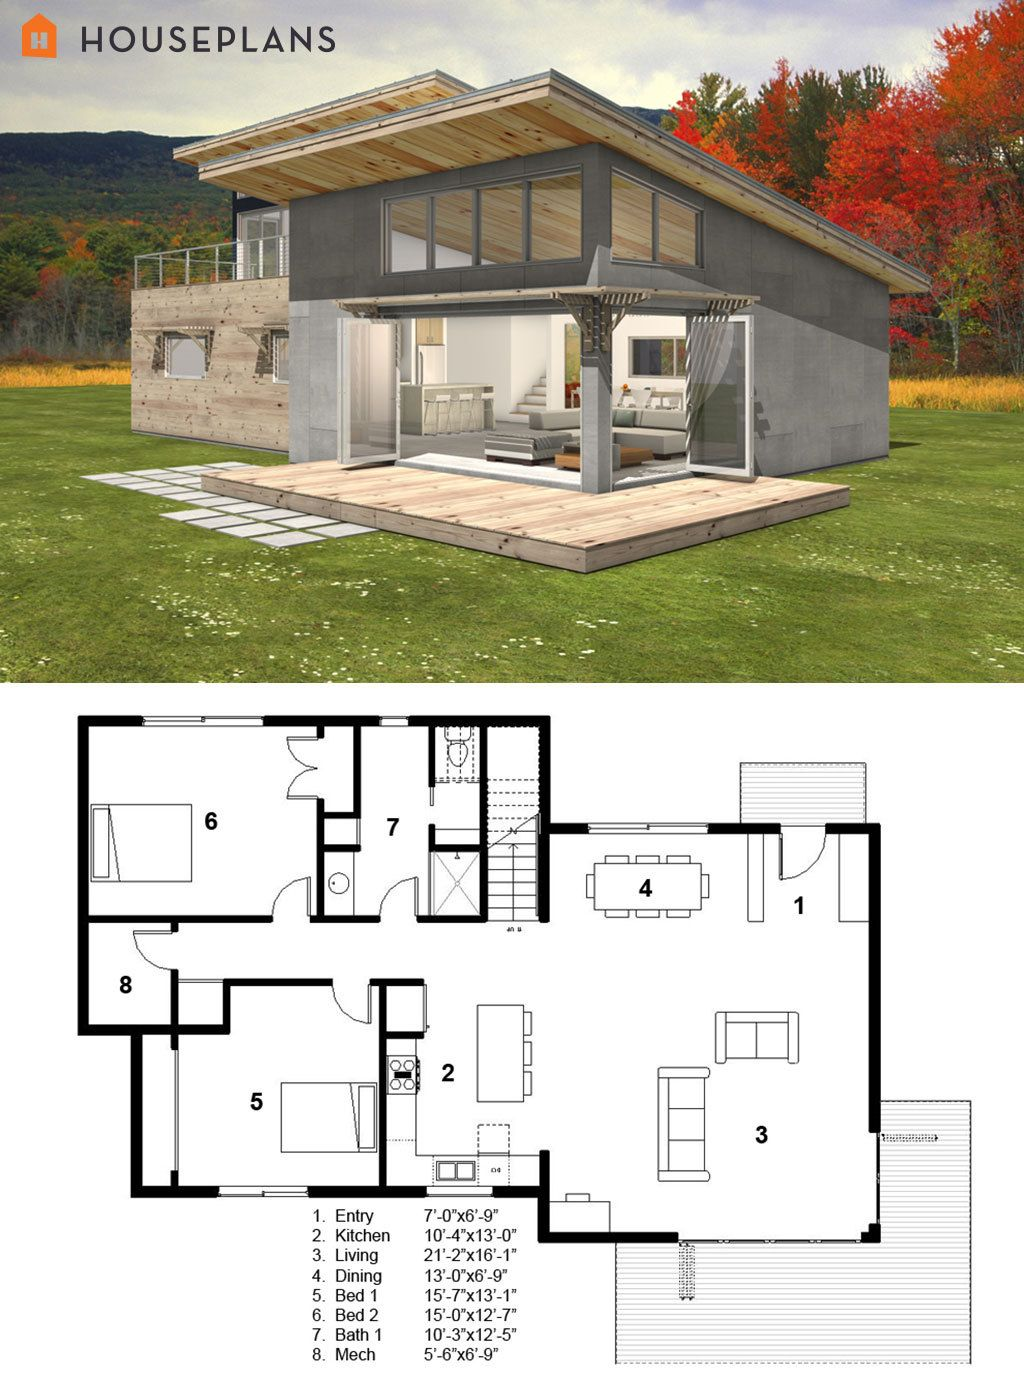 Small modern cabin house plan by freegreen energy for Most energy efficient house plans